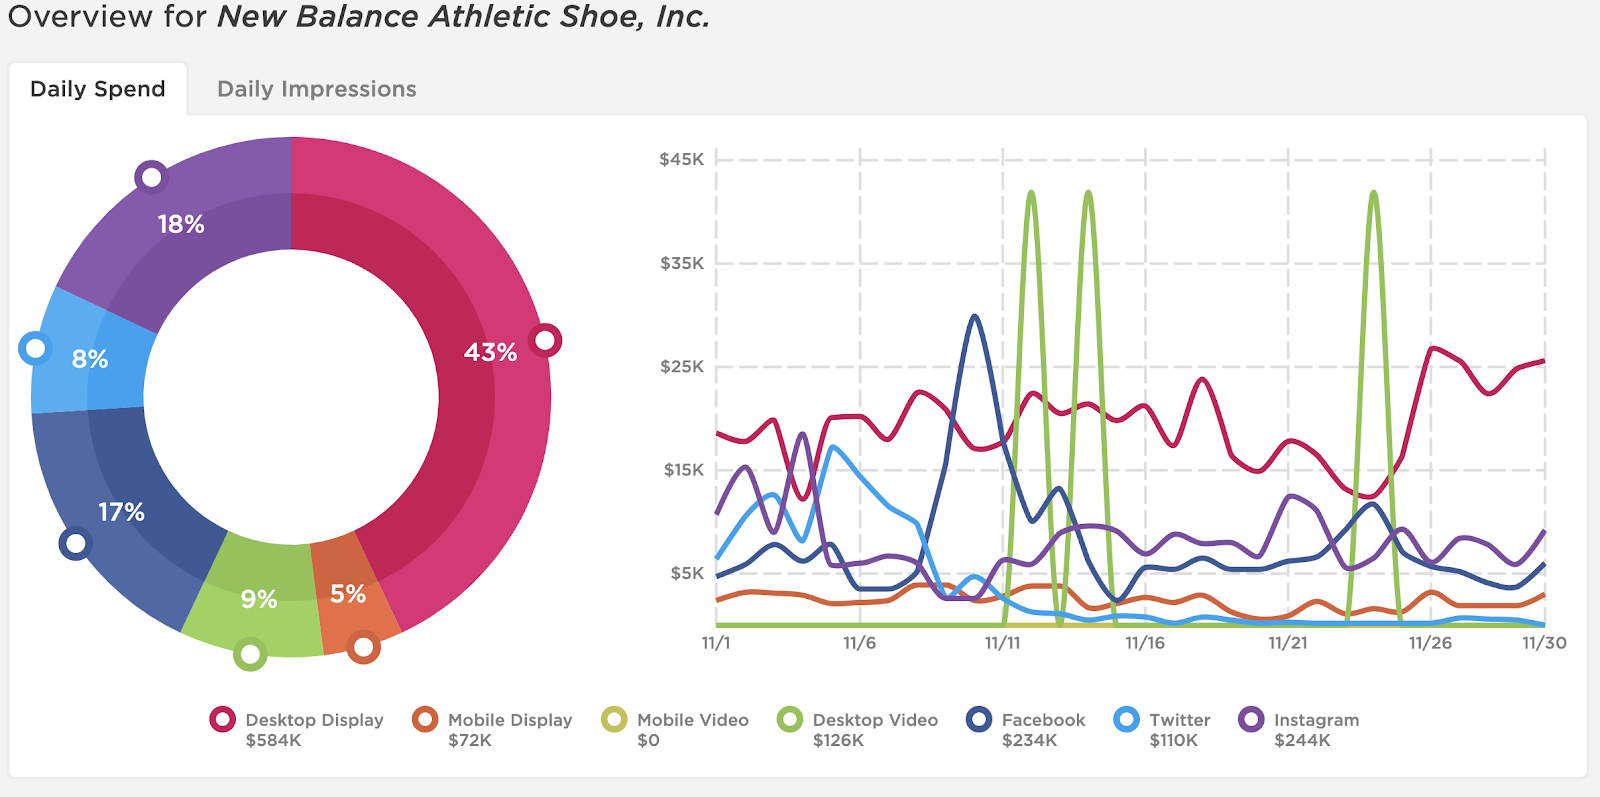 Top sites for New Balance in November, desktop display wins!